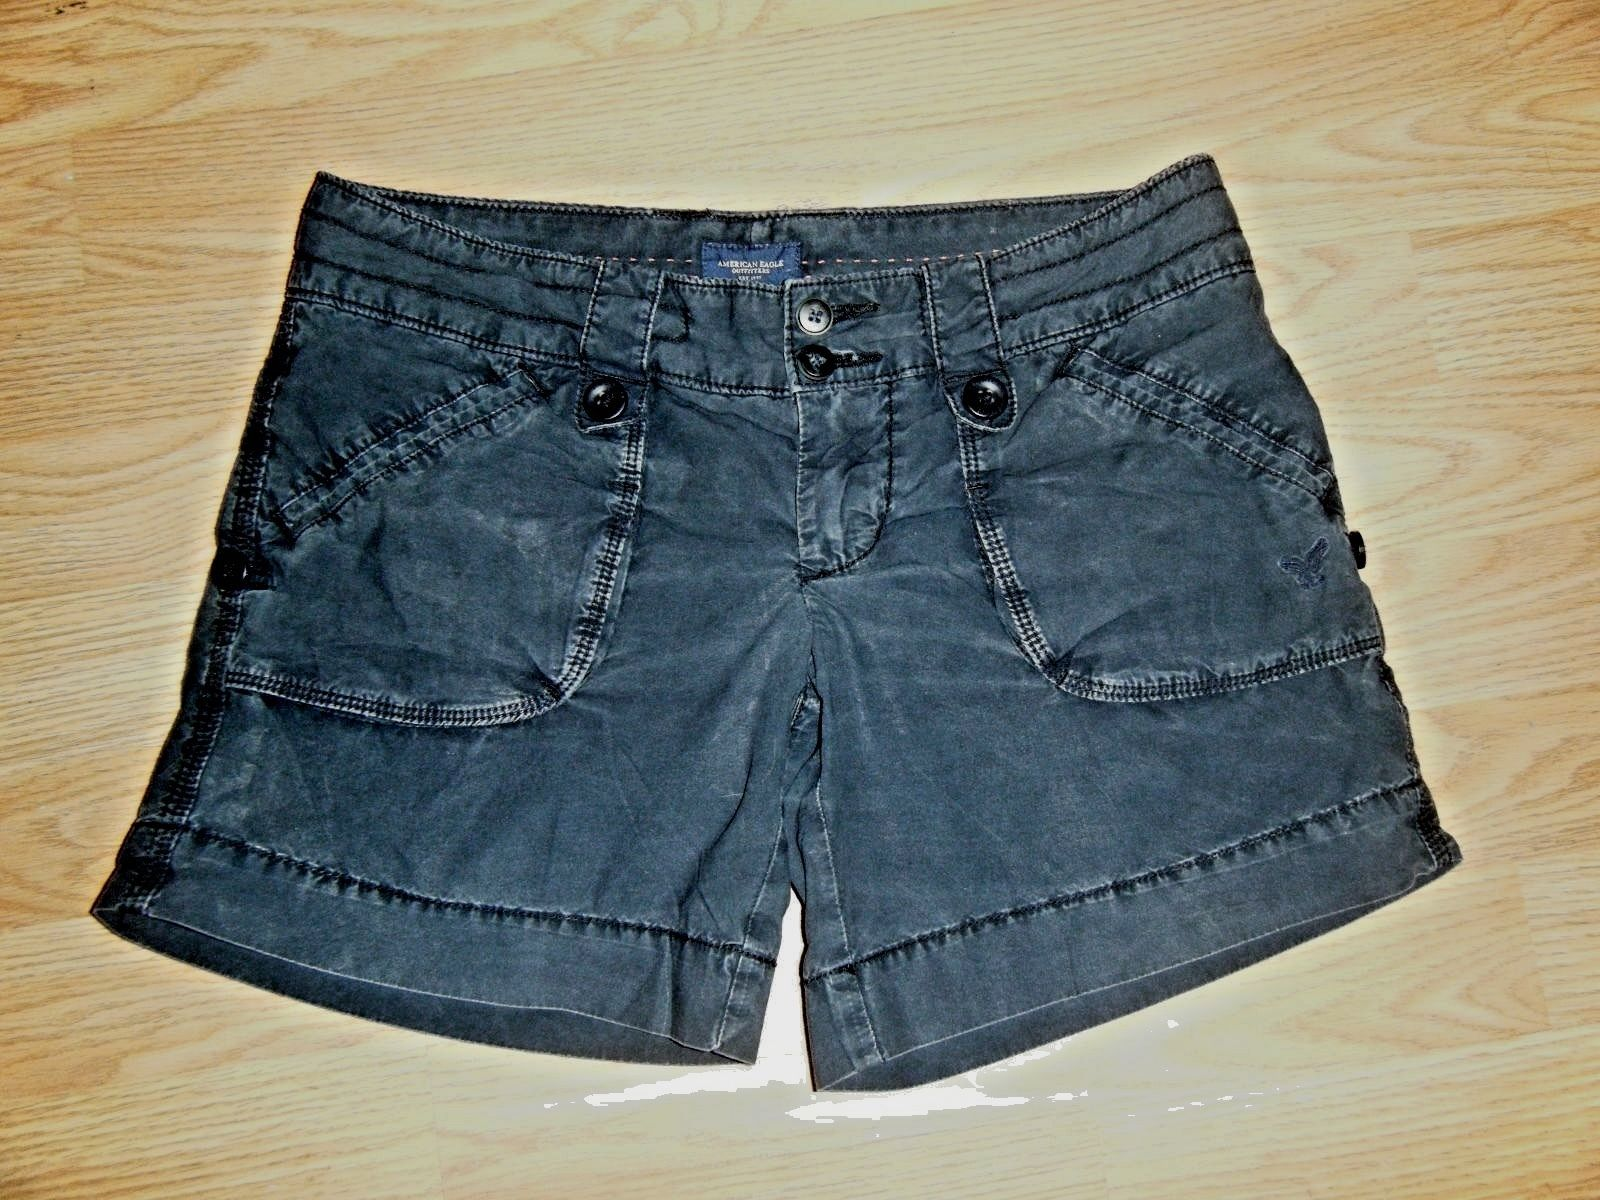 Primary image for AMERICAN EAGLE OUTFITTERS NAVY COTTON SHORTS SIZE 0